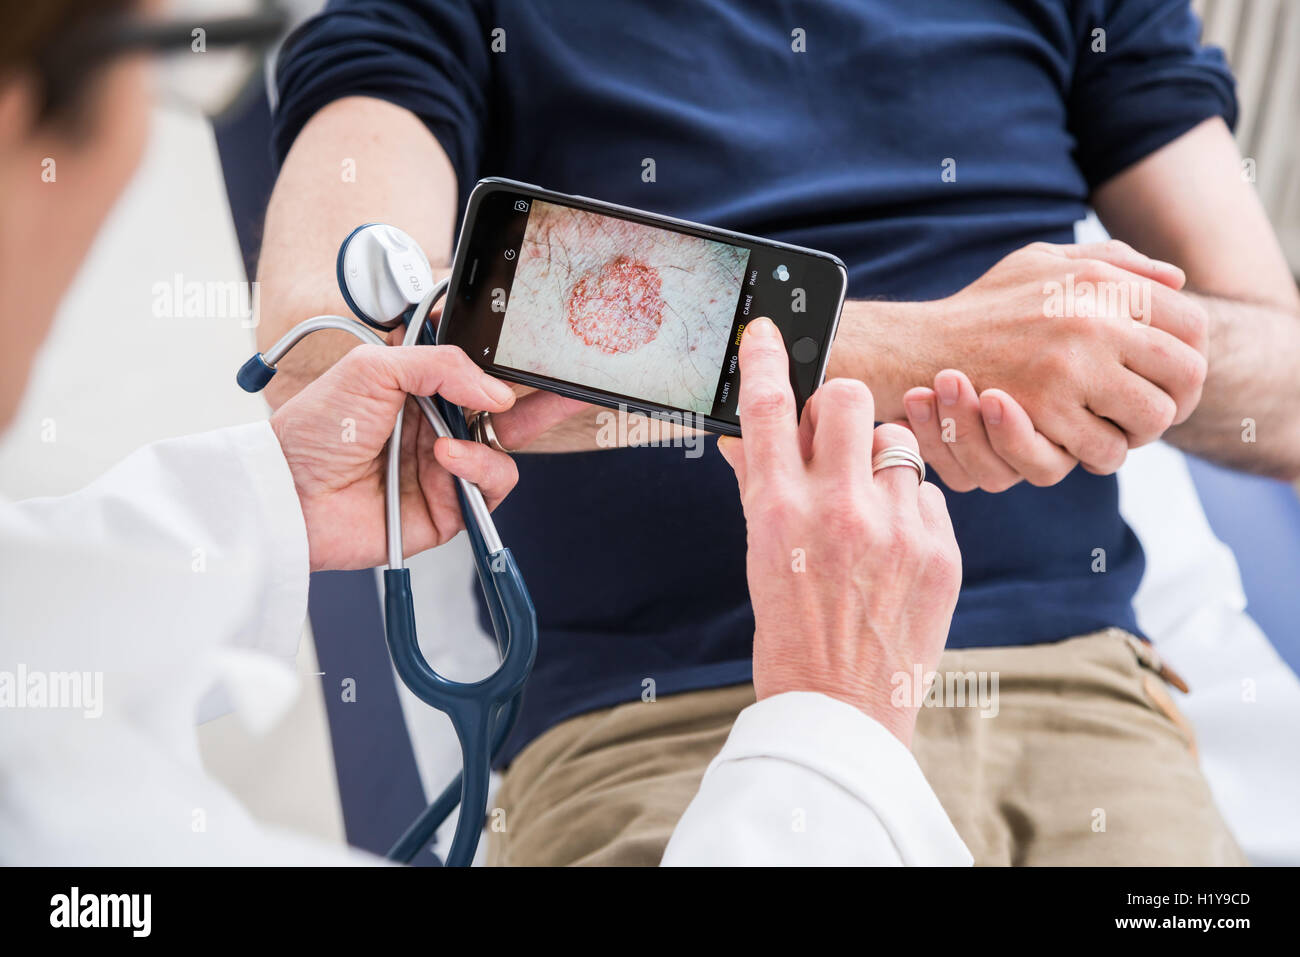 Doctor using his phone to transfer medical data. - Stock Image